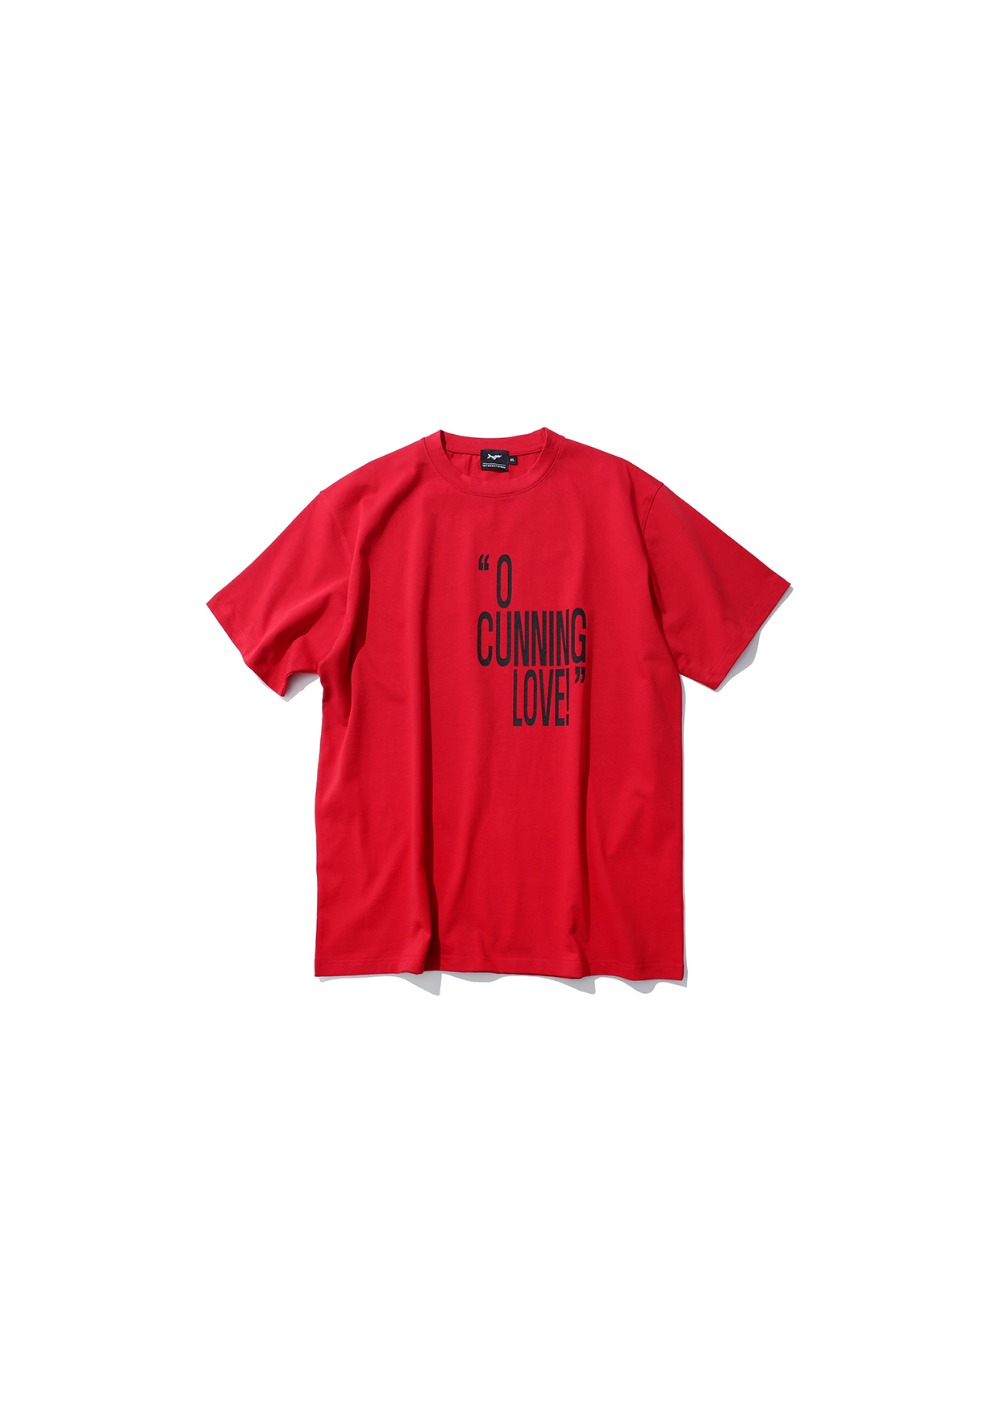 [I4P] big cunning tee red